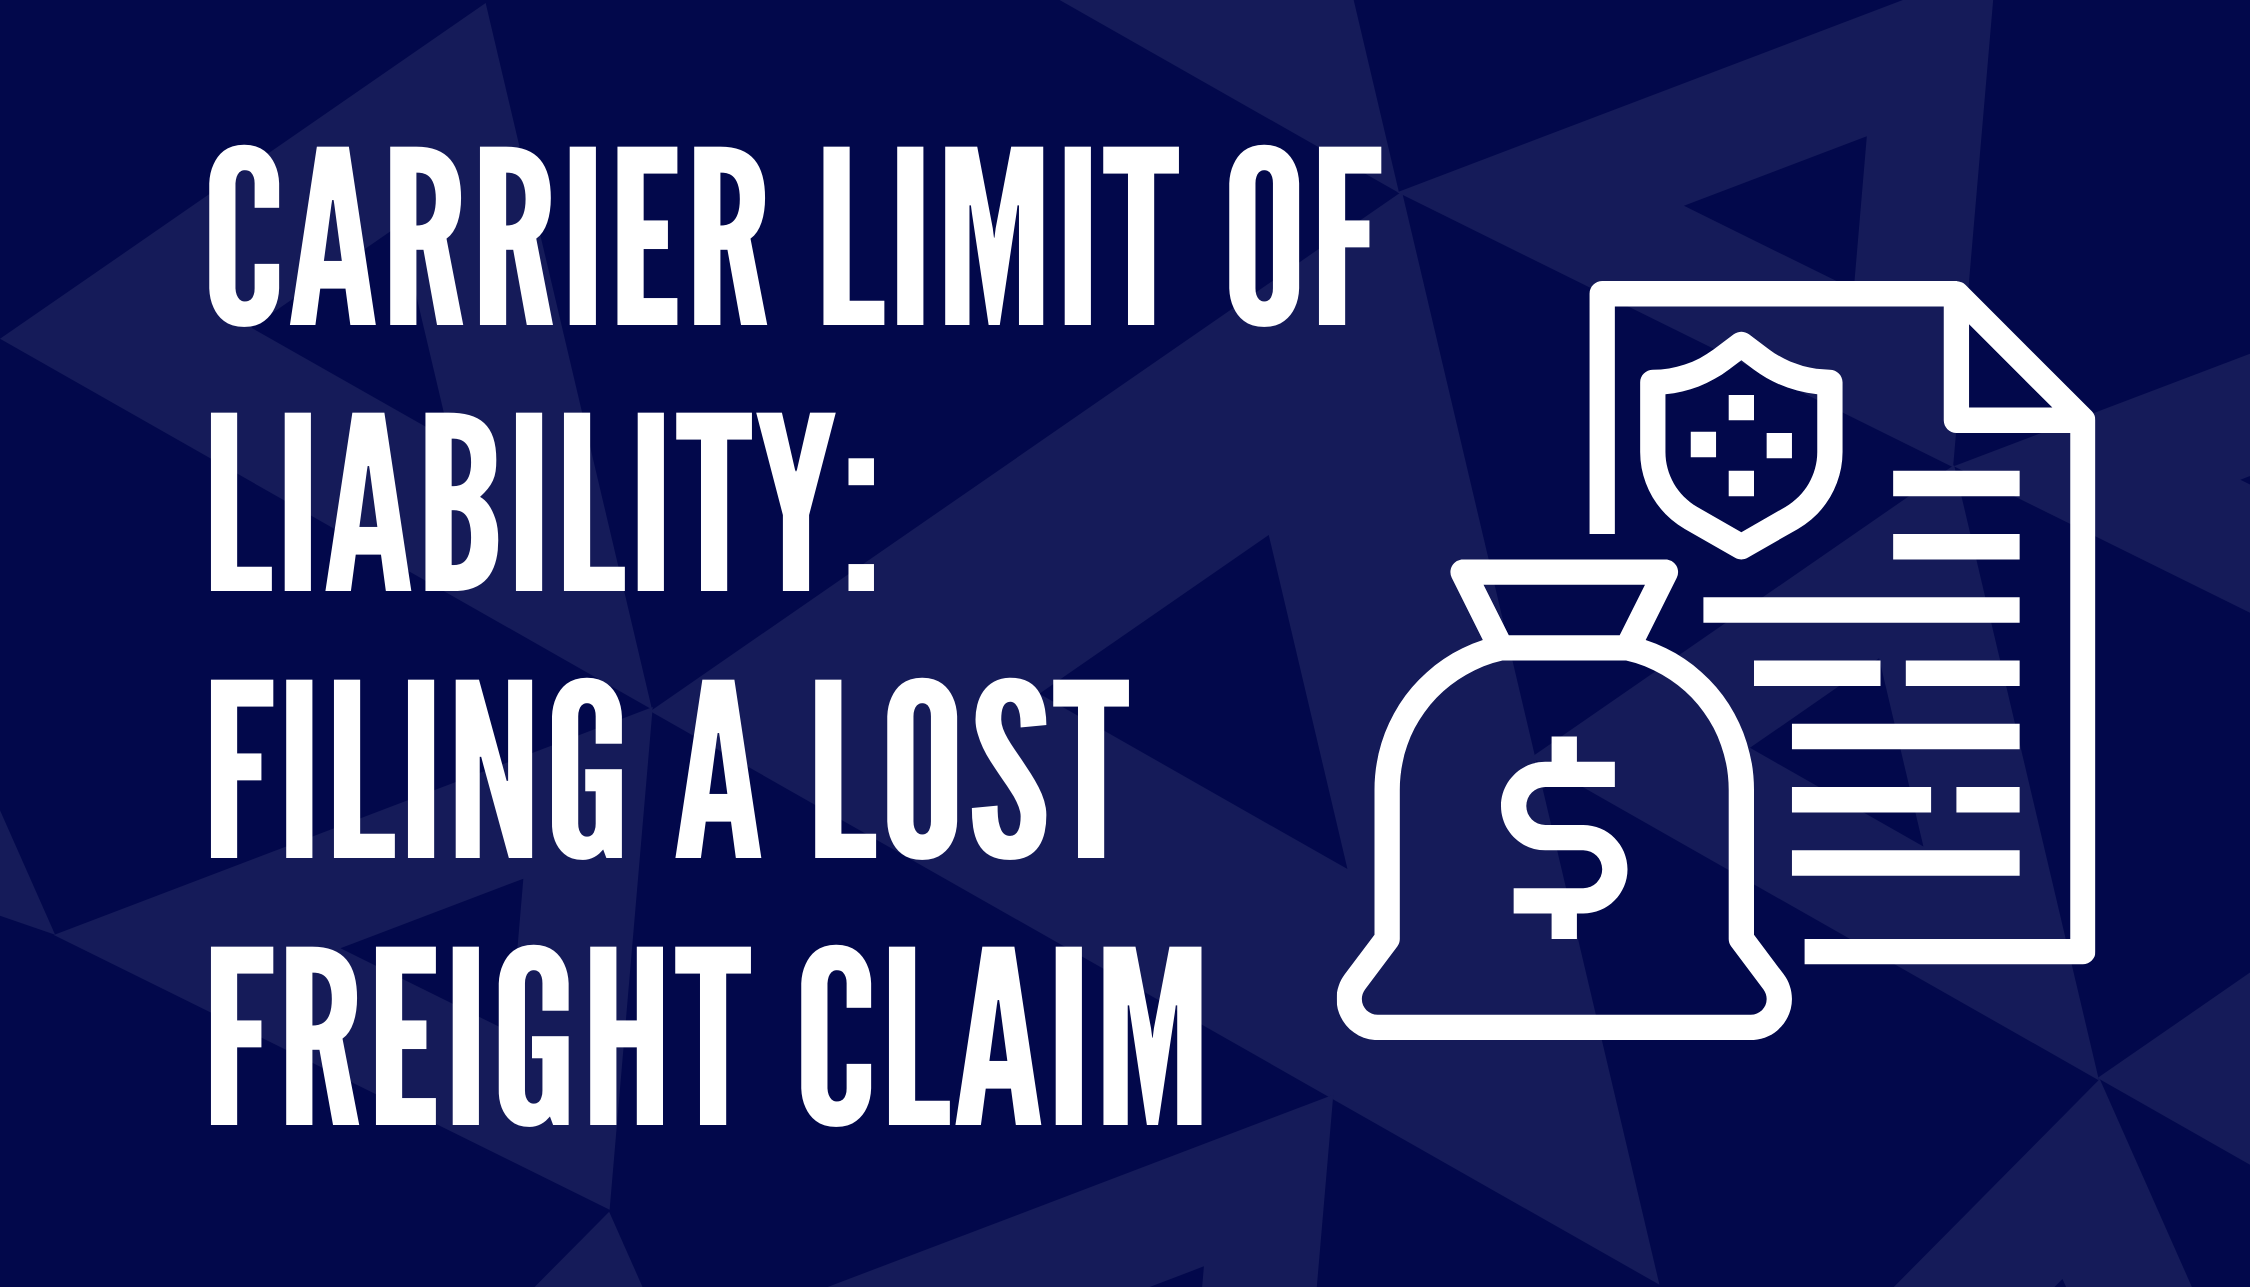 Carrier Limit of Liability: Filing a Lost Freight Claim